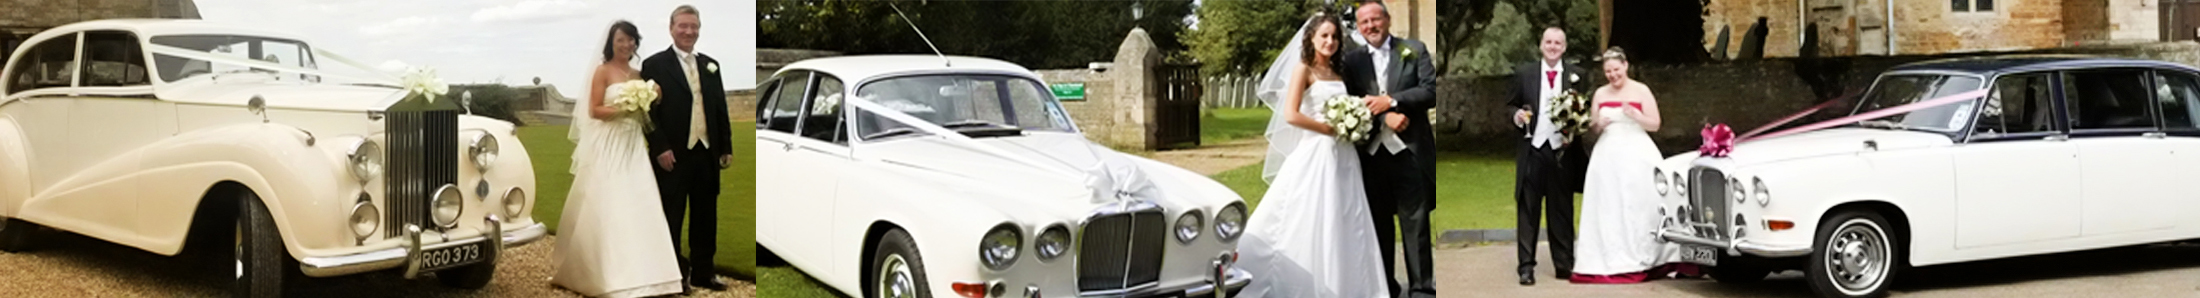 hire a wedding car Northamptonshire